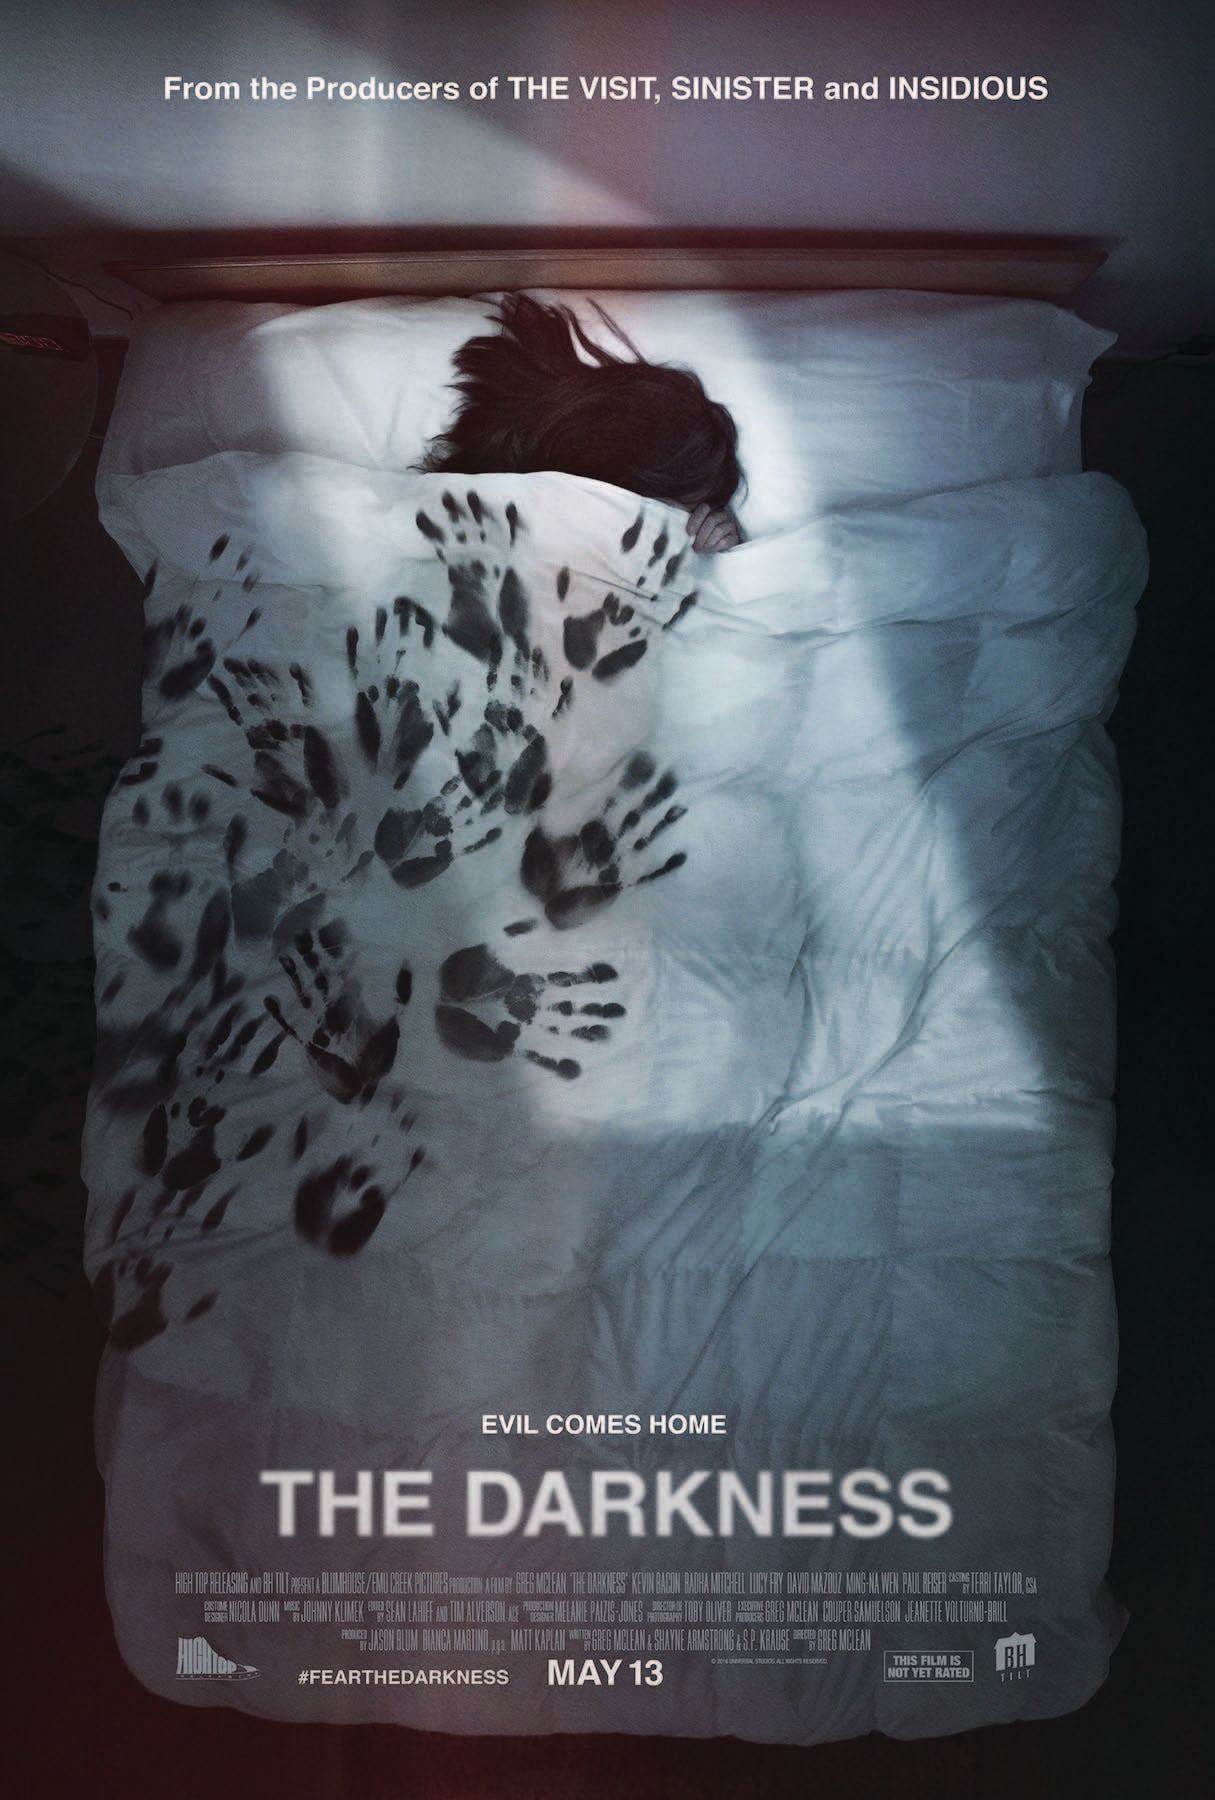 TheDarkness Poster.jpg?zoom=1 - SURPRISE! A New Clip Sees Through the Darkness